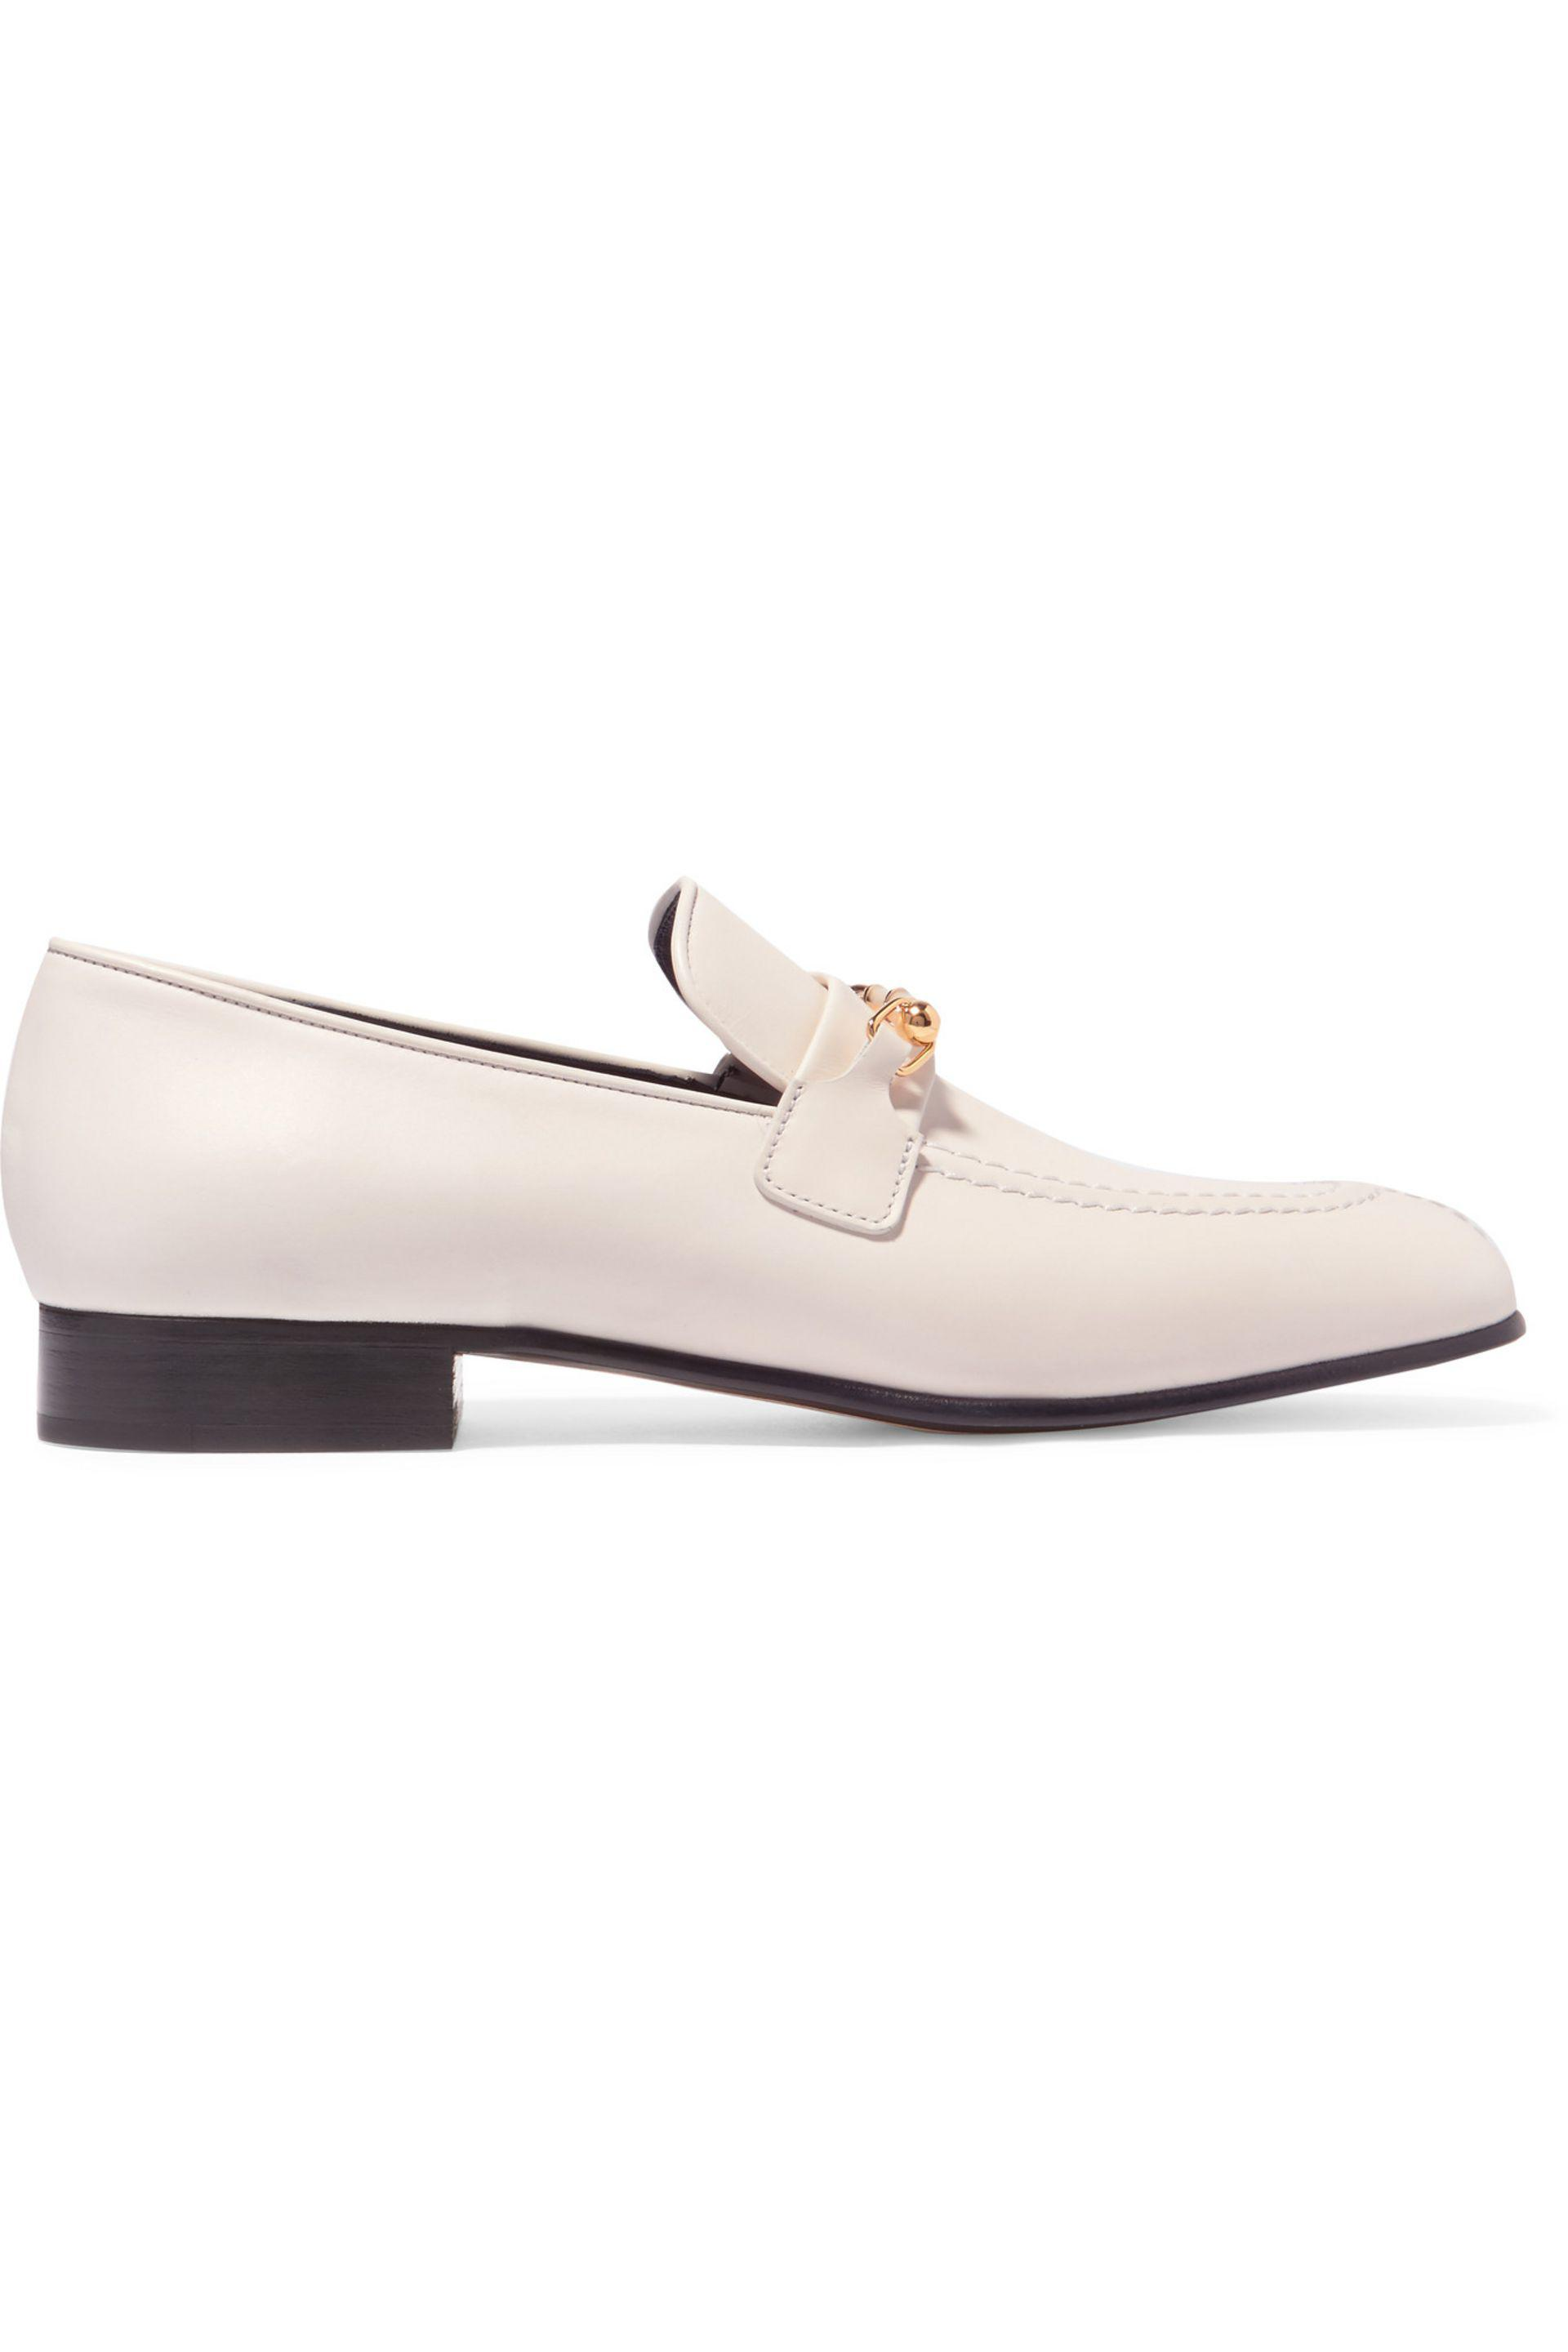 smooth slip-on loafers - White Joseph XzQAt